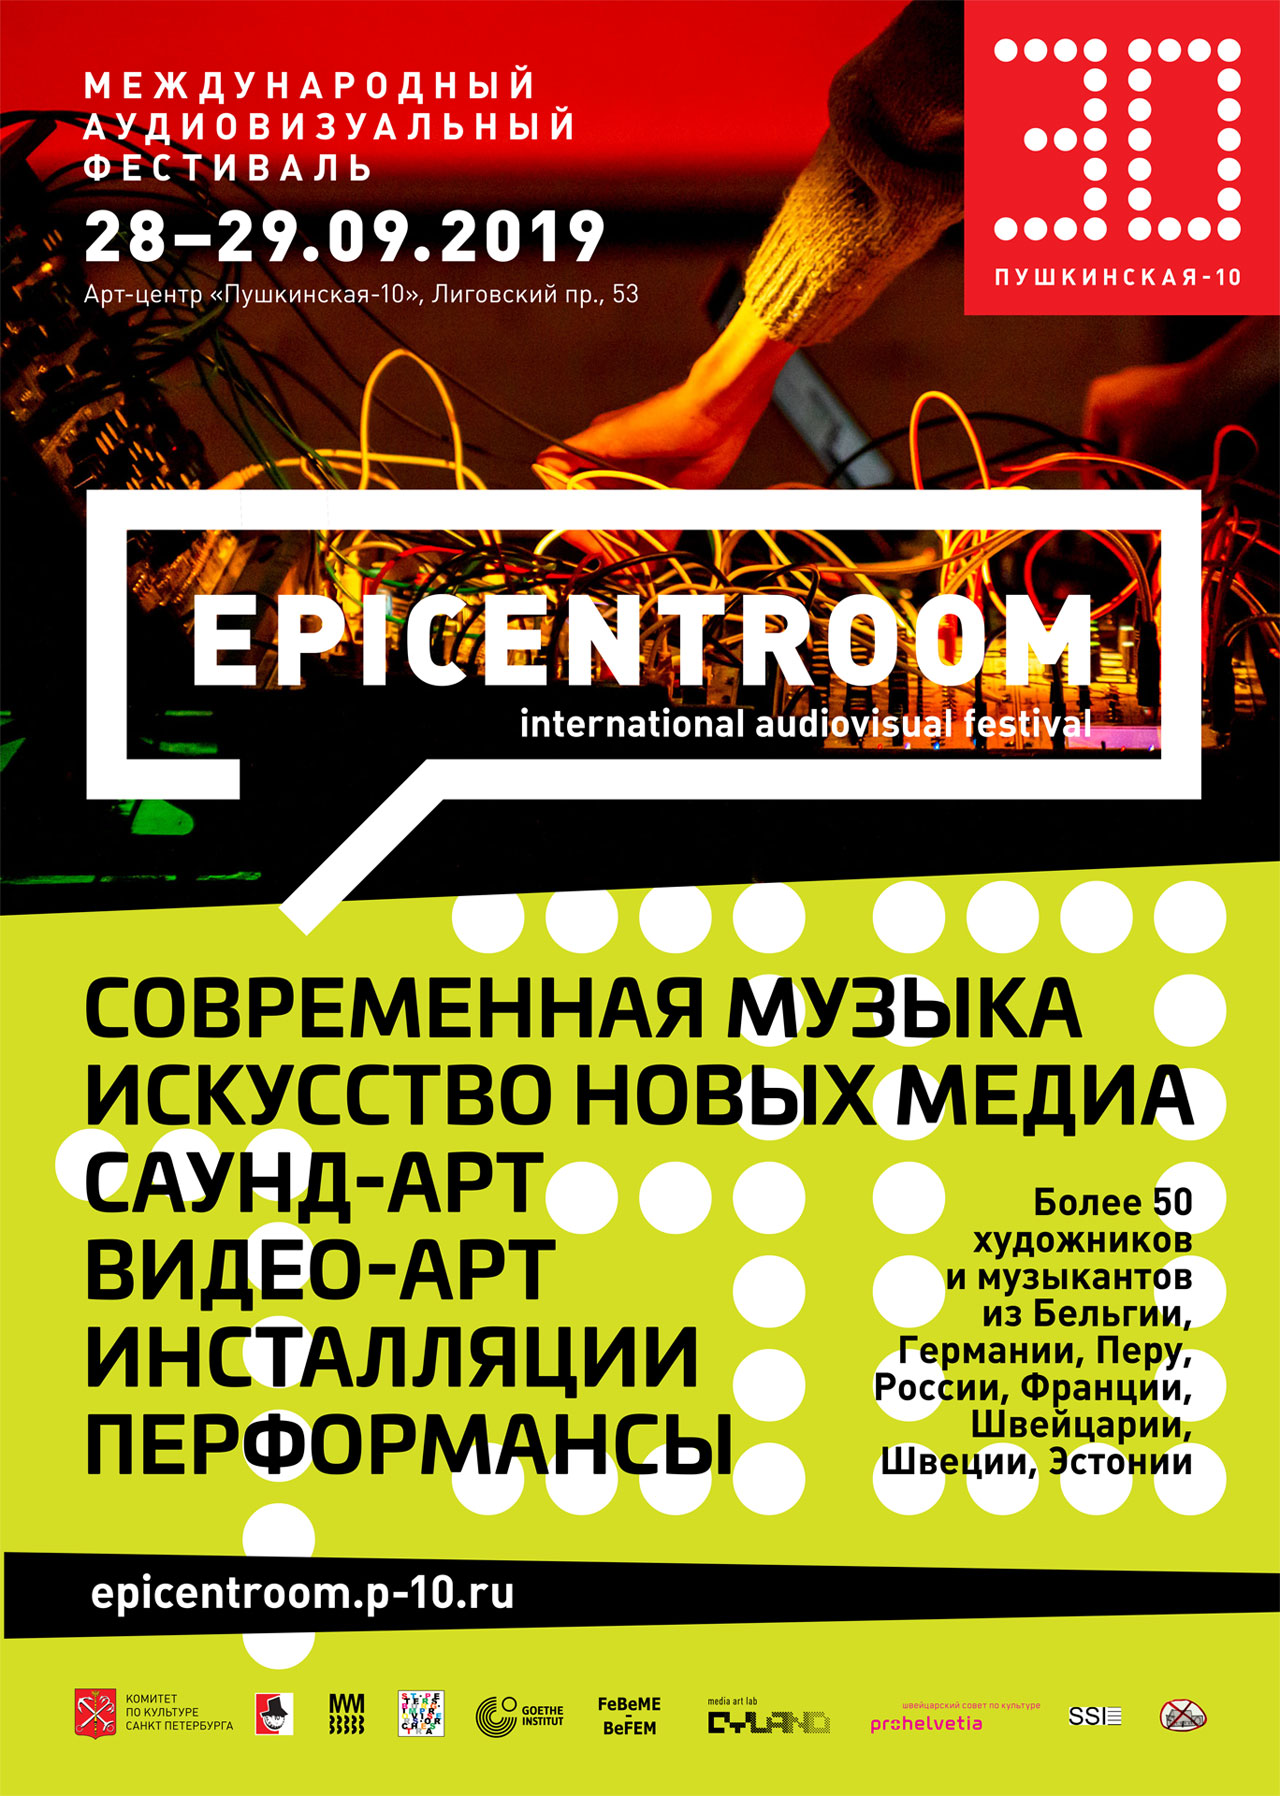 EPICENTROOM International Audio & Video Festival